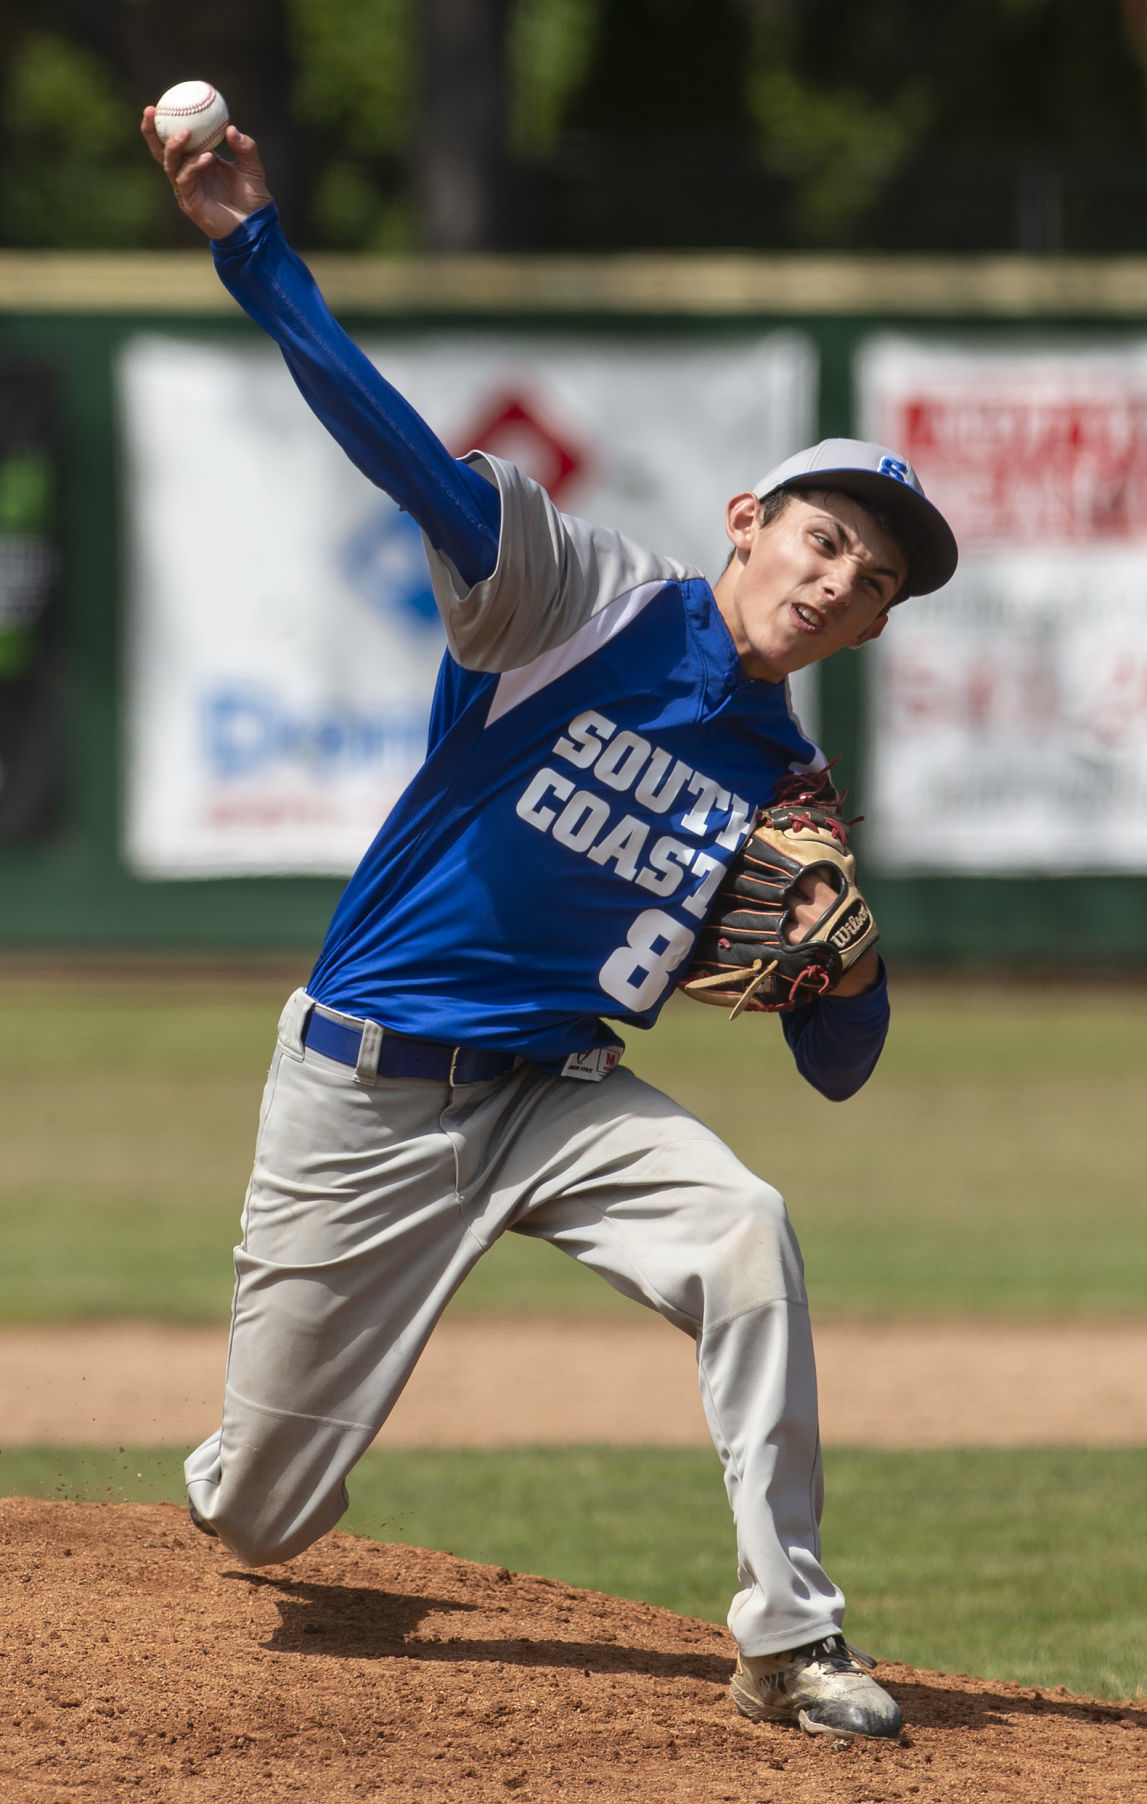 South Douglas County earns spot in Babe Ruth regionals